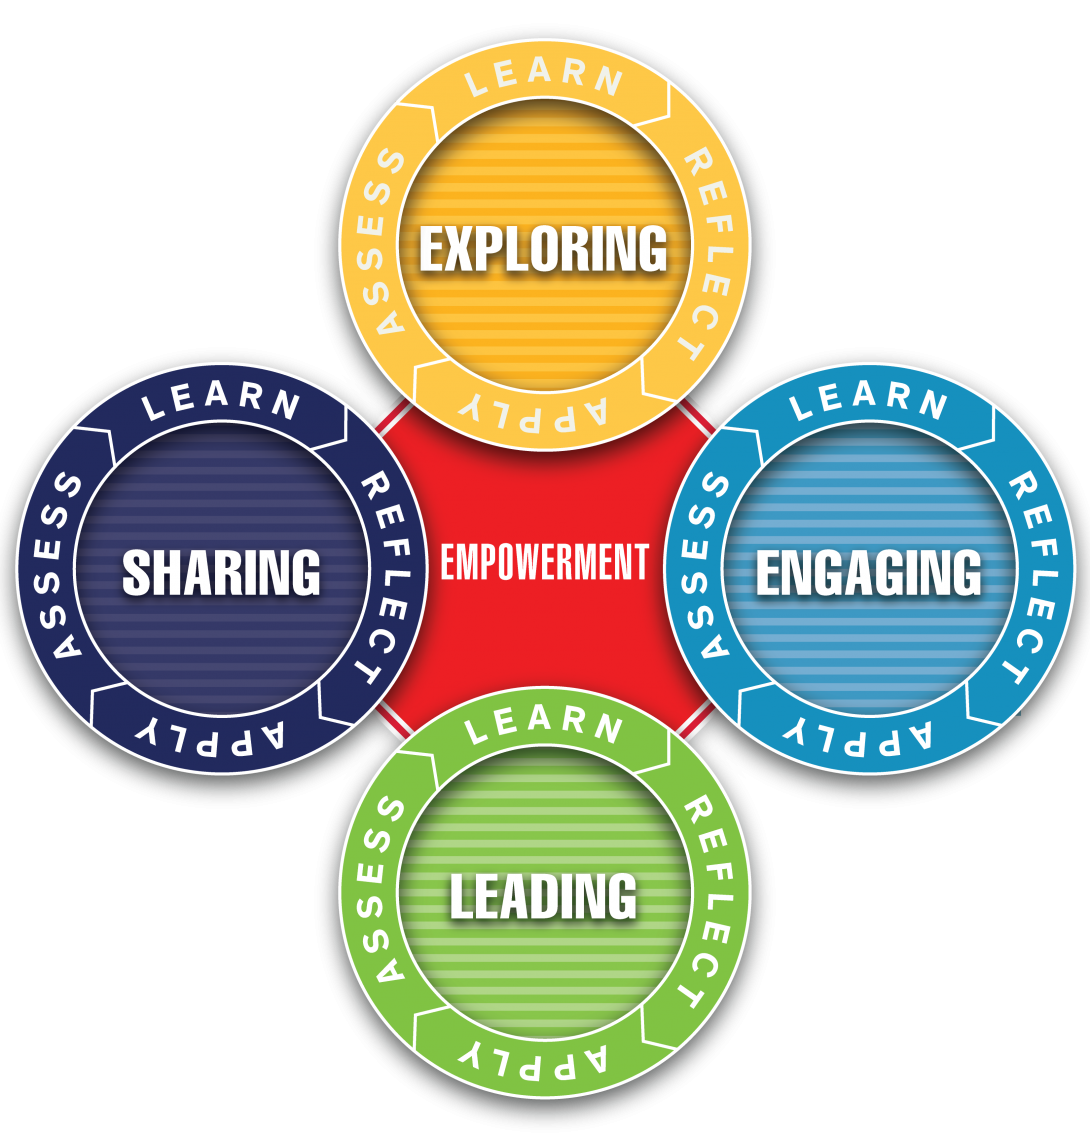 image of leadership model, with 'exploring' at top in a circle, then 'engaging' on right in a circle, then 'leading' at bottom in a circle, and 'sharing' on left in a circle. All circles surrounded by the words 'learn, reflect, apply, assess;' and center of model is word 'empowerment.'